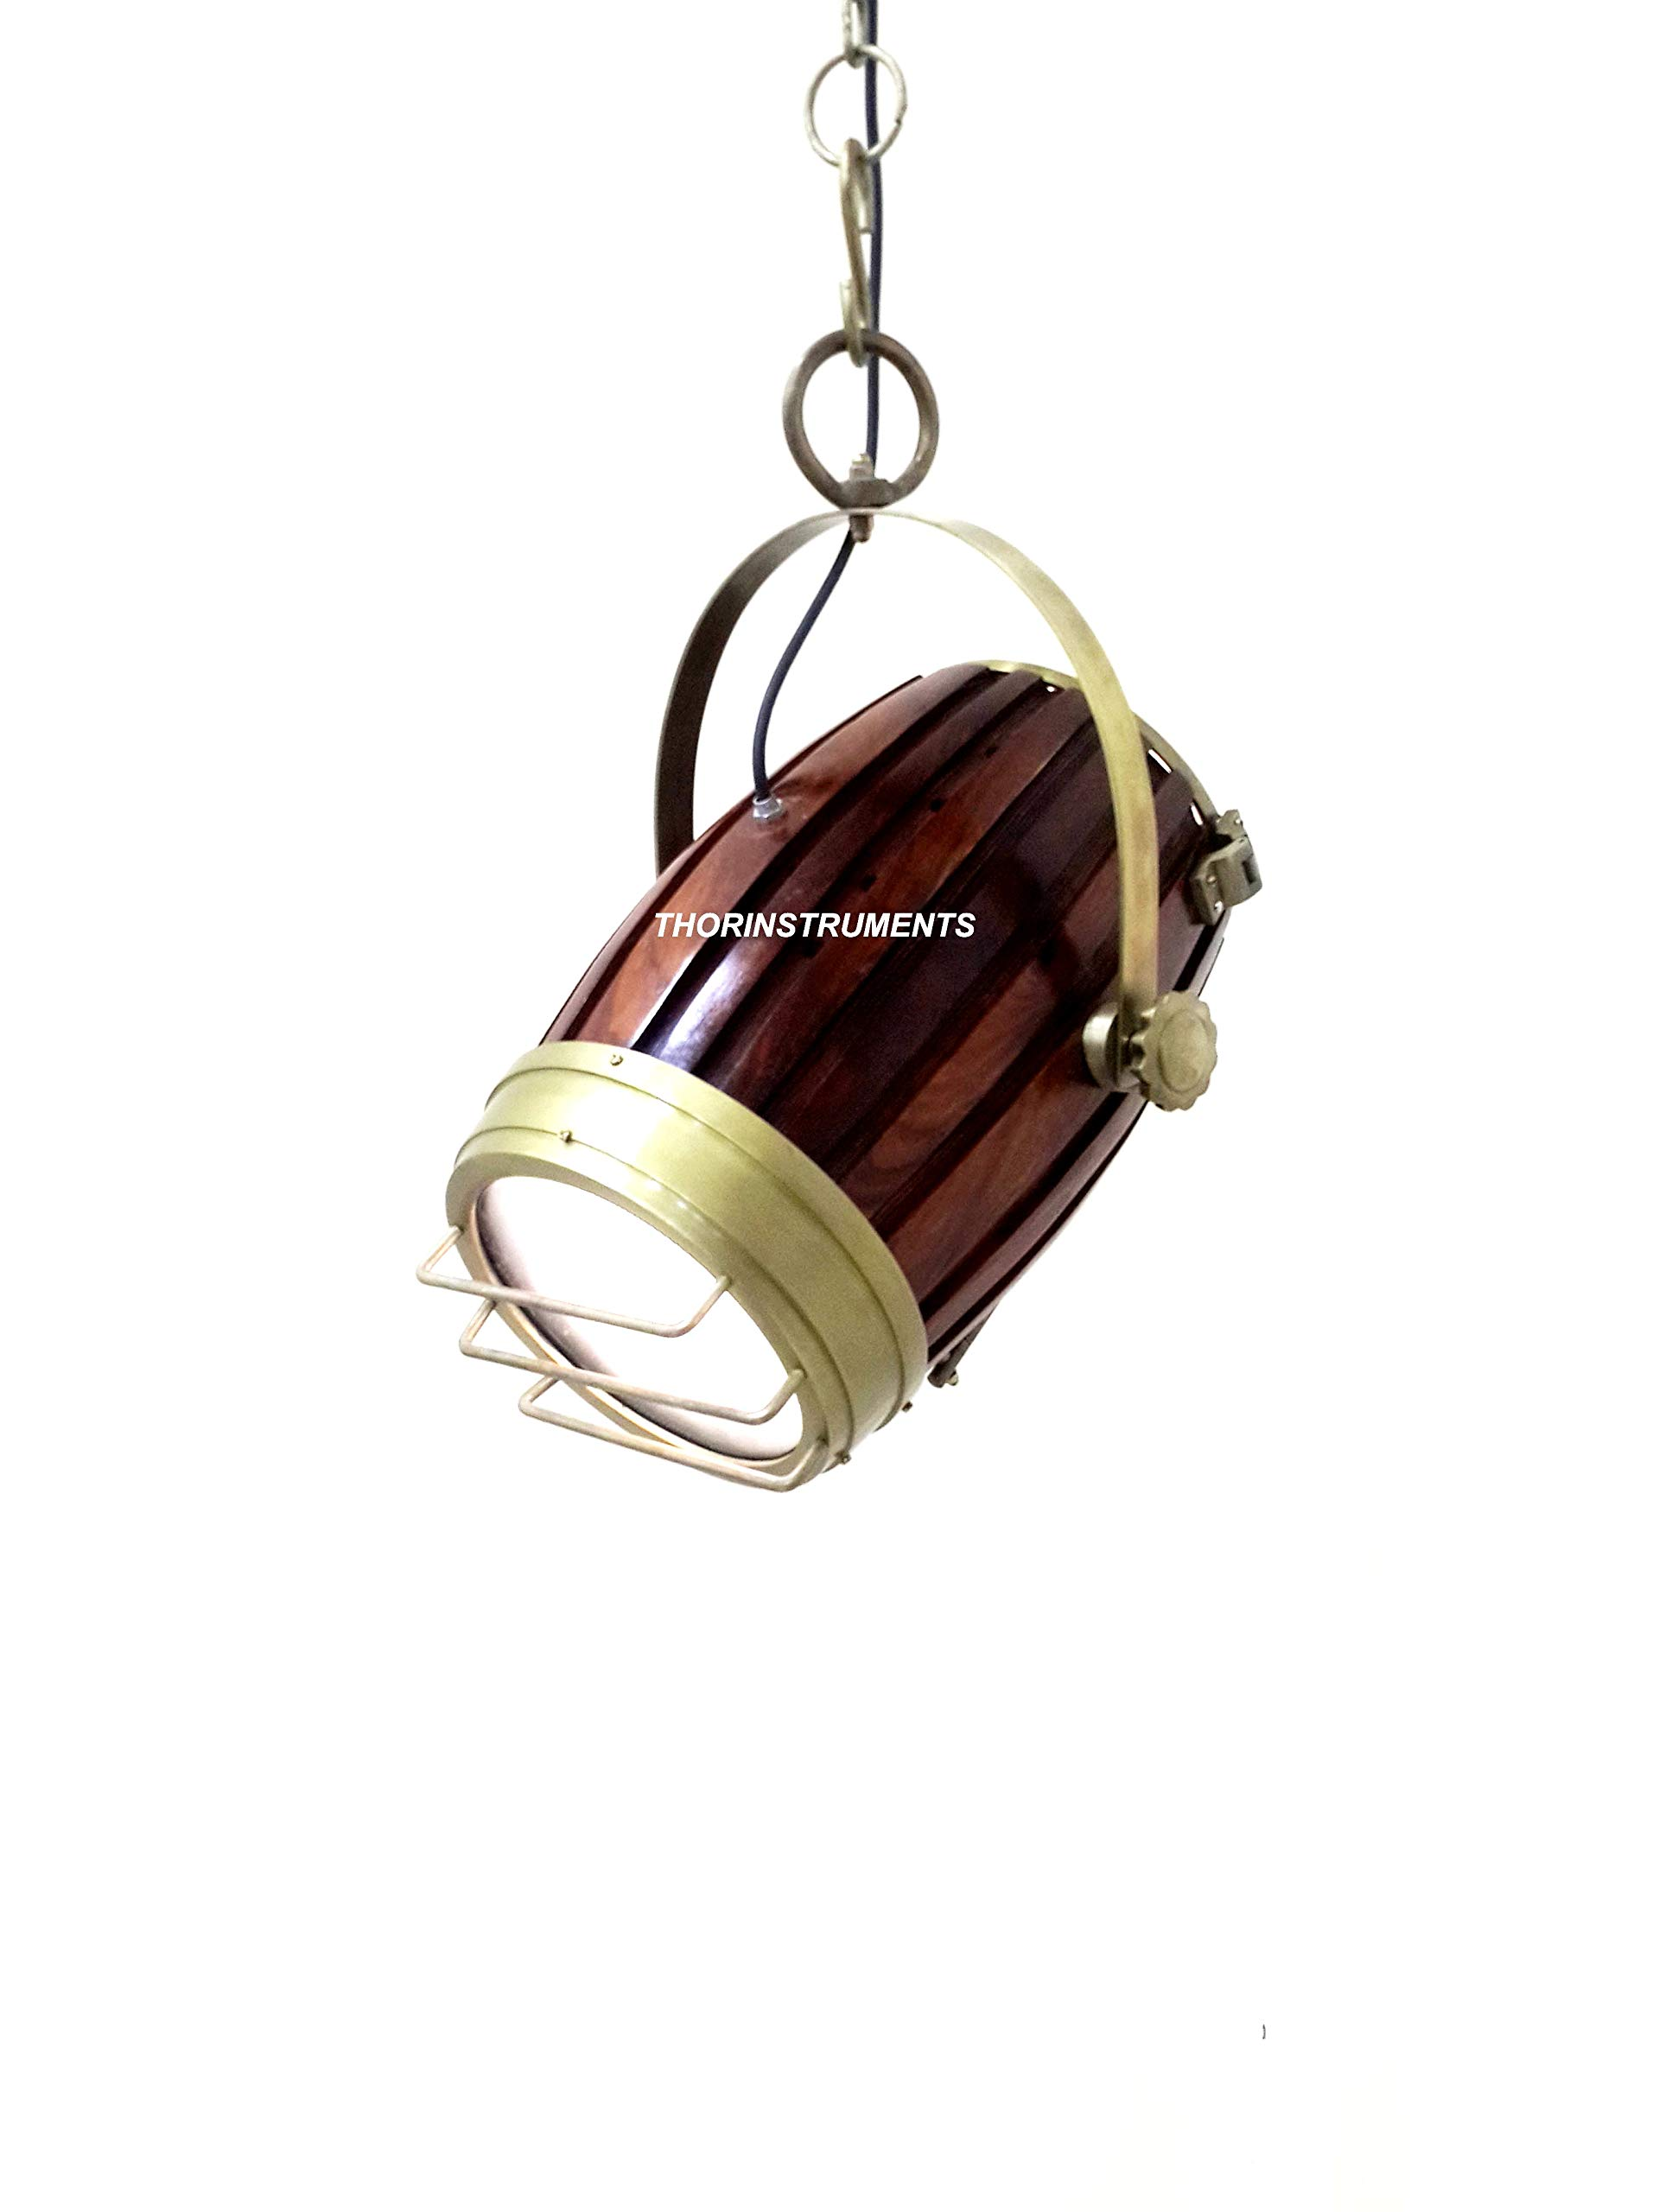 Antique Marine Hallway Nautical Brown Wooden Ceiling Hanging Light-Decorative lamp